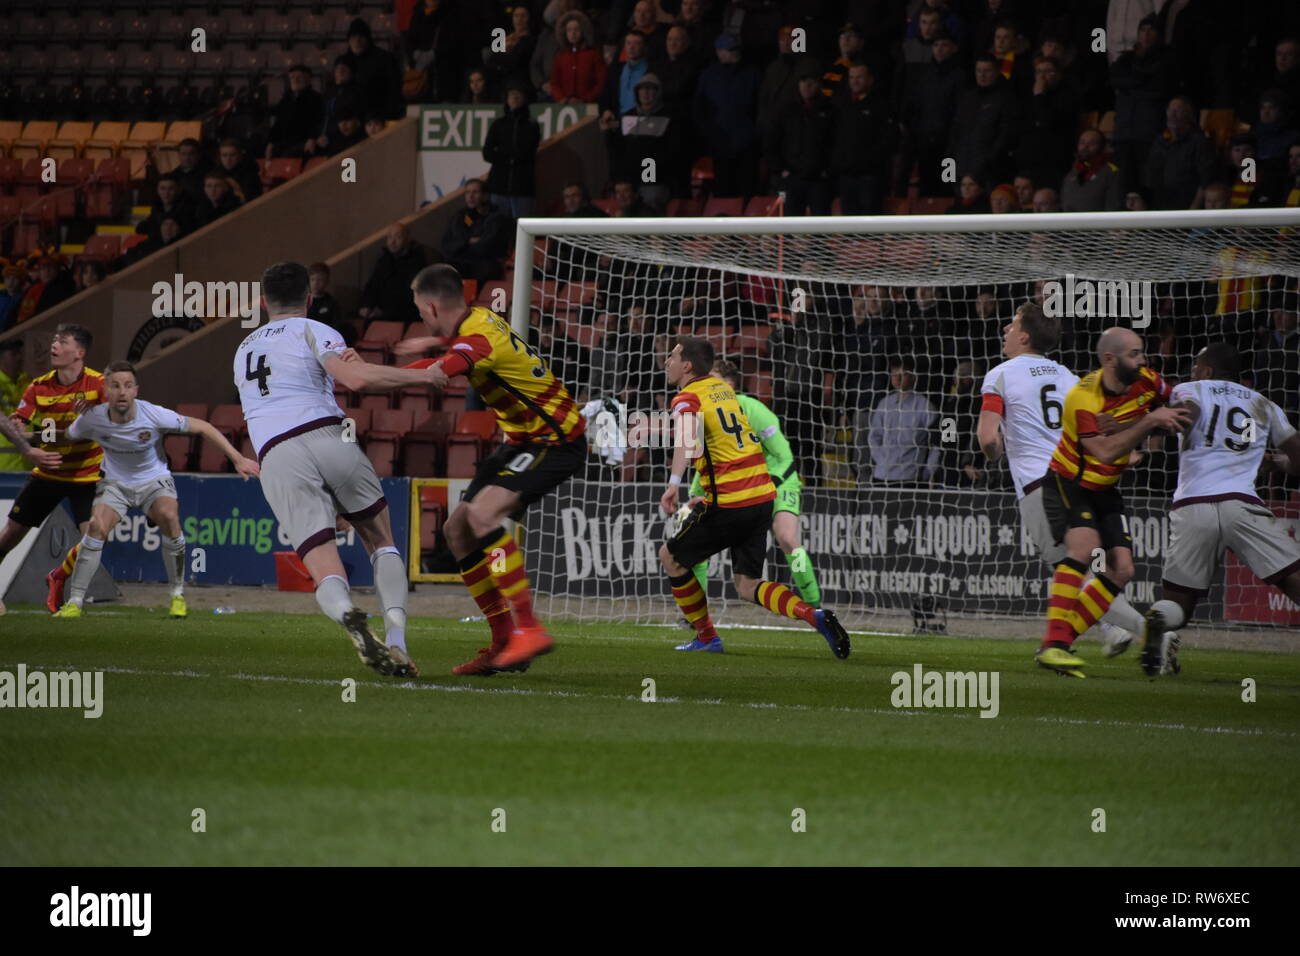 firhill, Maryhill, Glasgow, Scotland  4th march 2019 ruth and tumble as Partick Thistle defend deep Credit: Thomas Porter/Alamy News - Stock Image